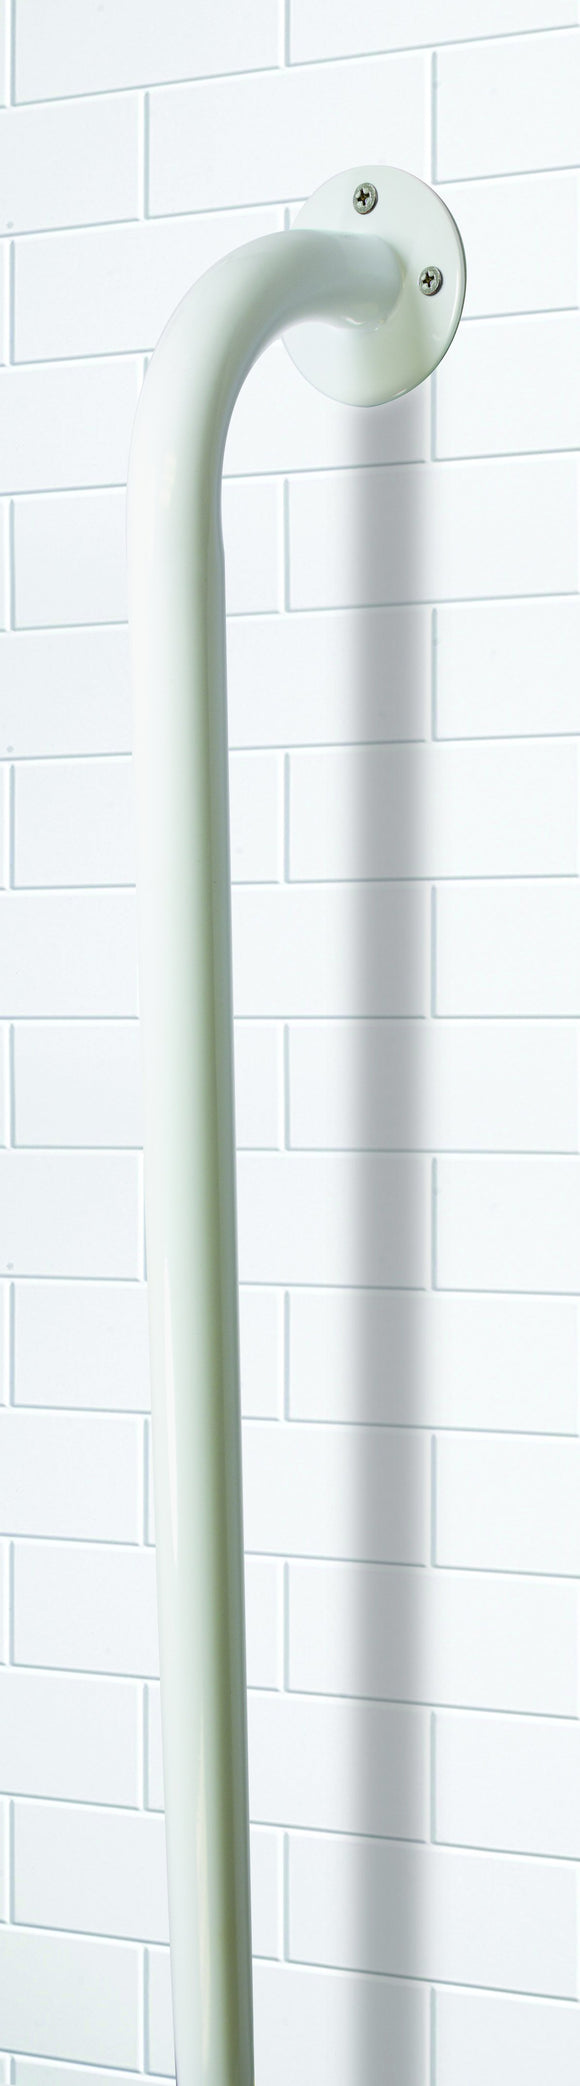 B3224 Grab Bar 24in White Enamel